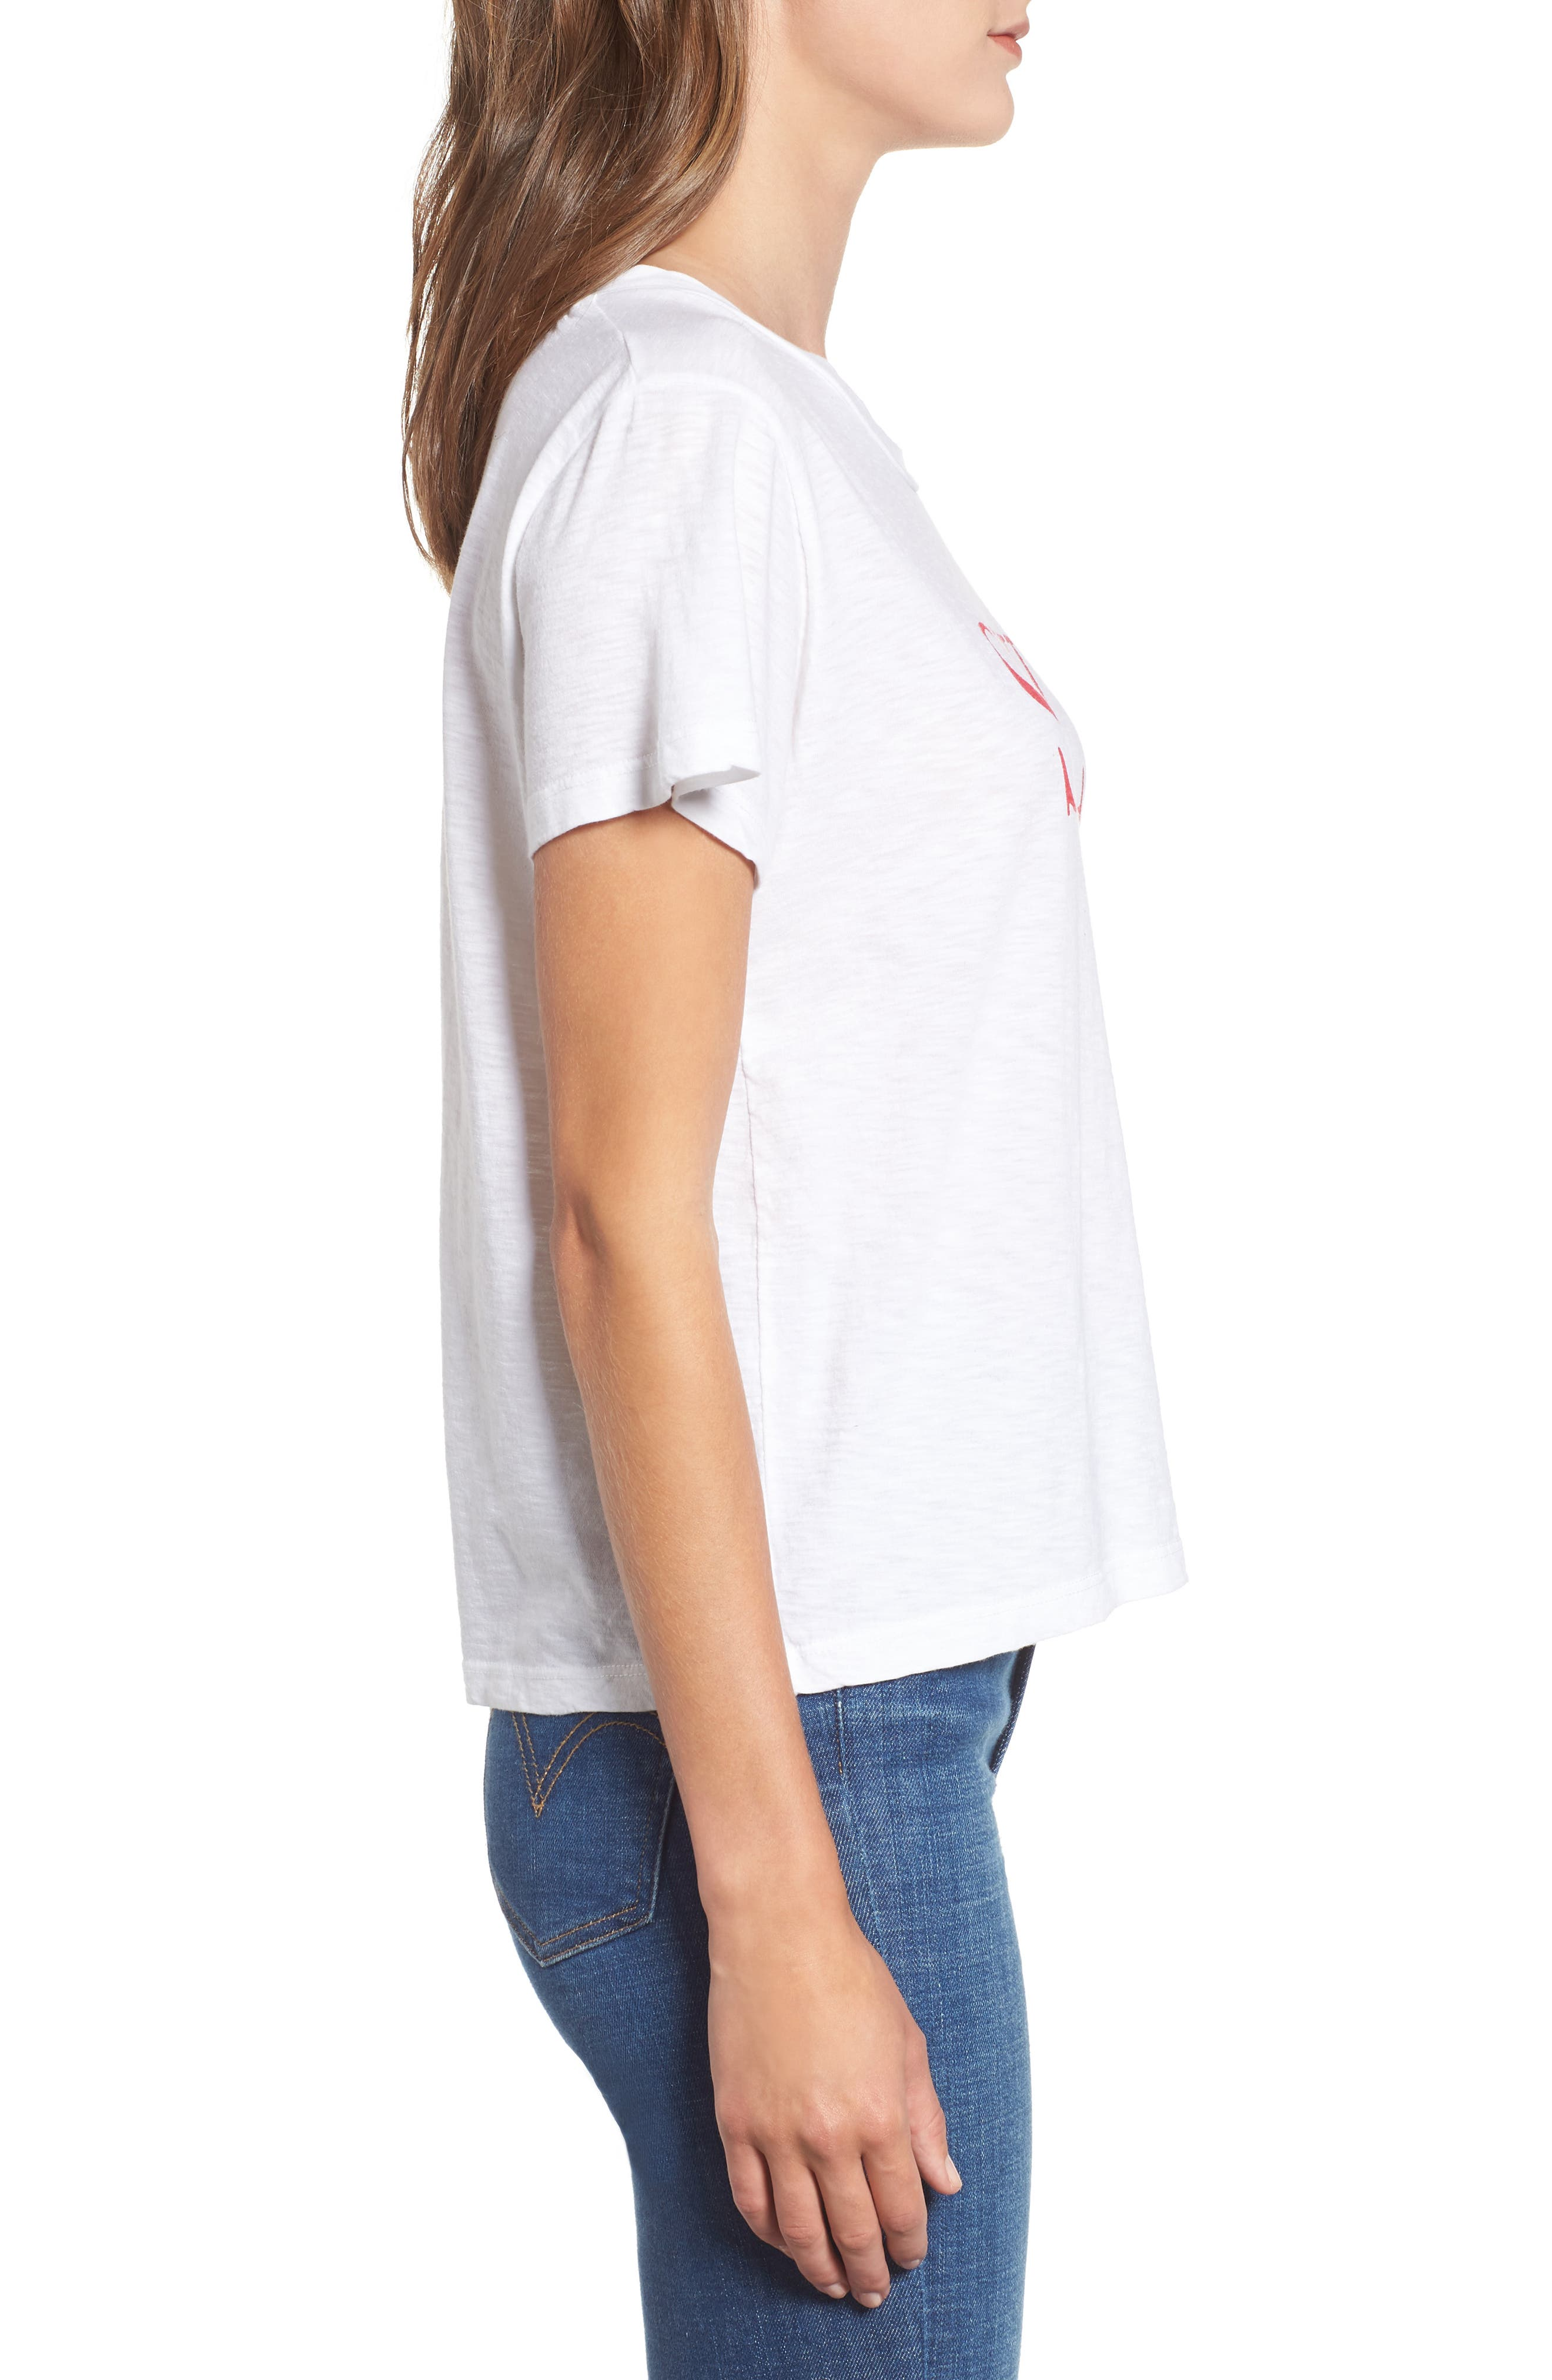 SUNDRY,                             Smile Boxy Cotton Tee,                             Alternate thumbnail 3, color,                             100